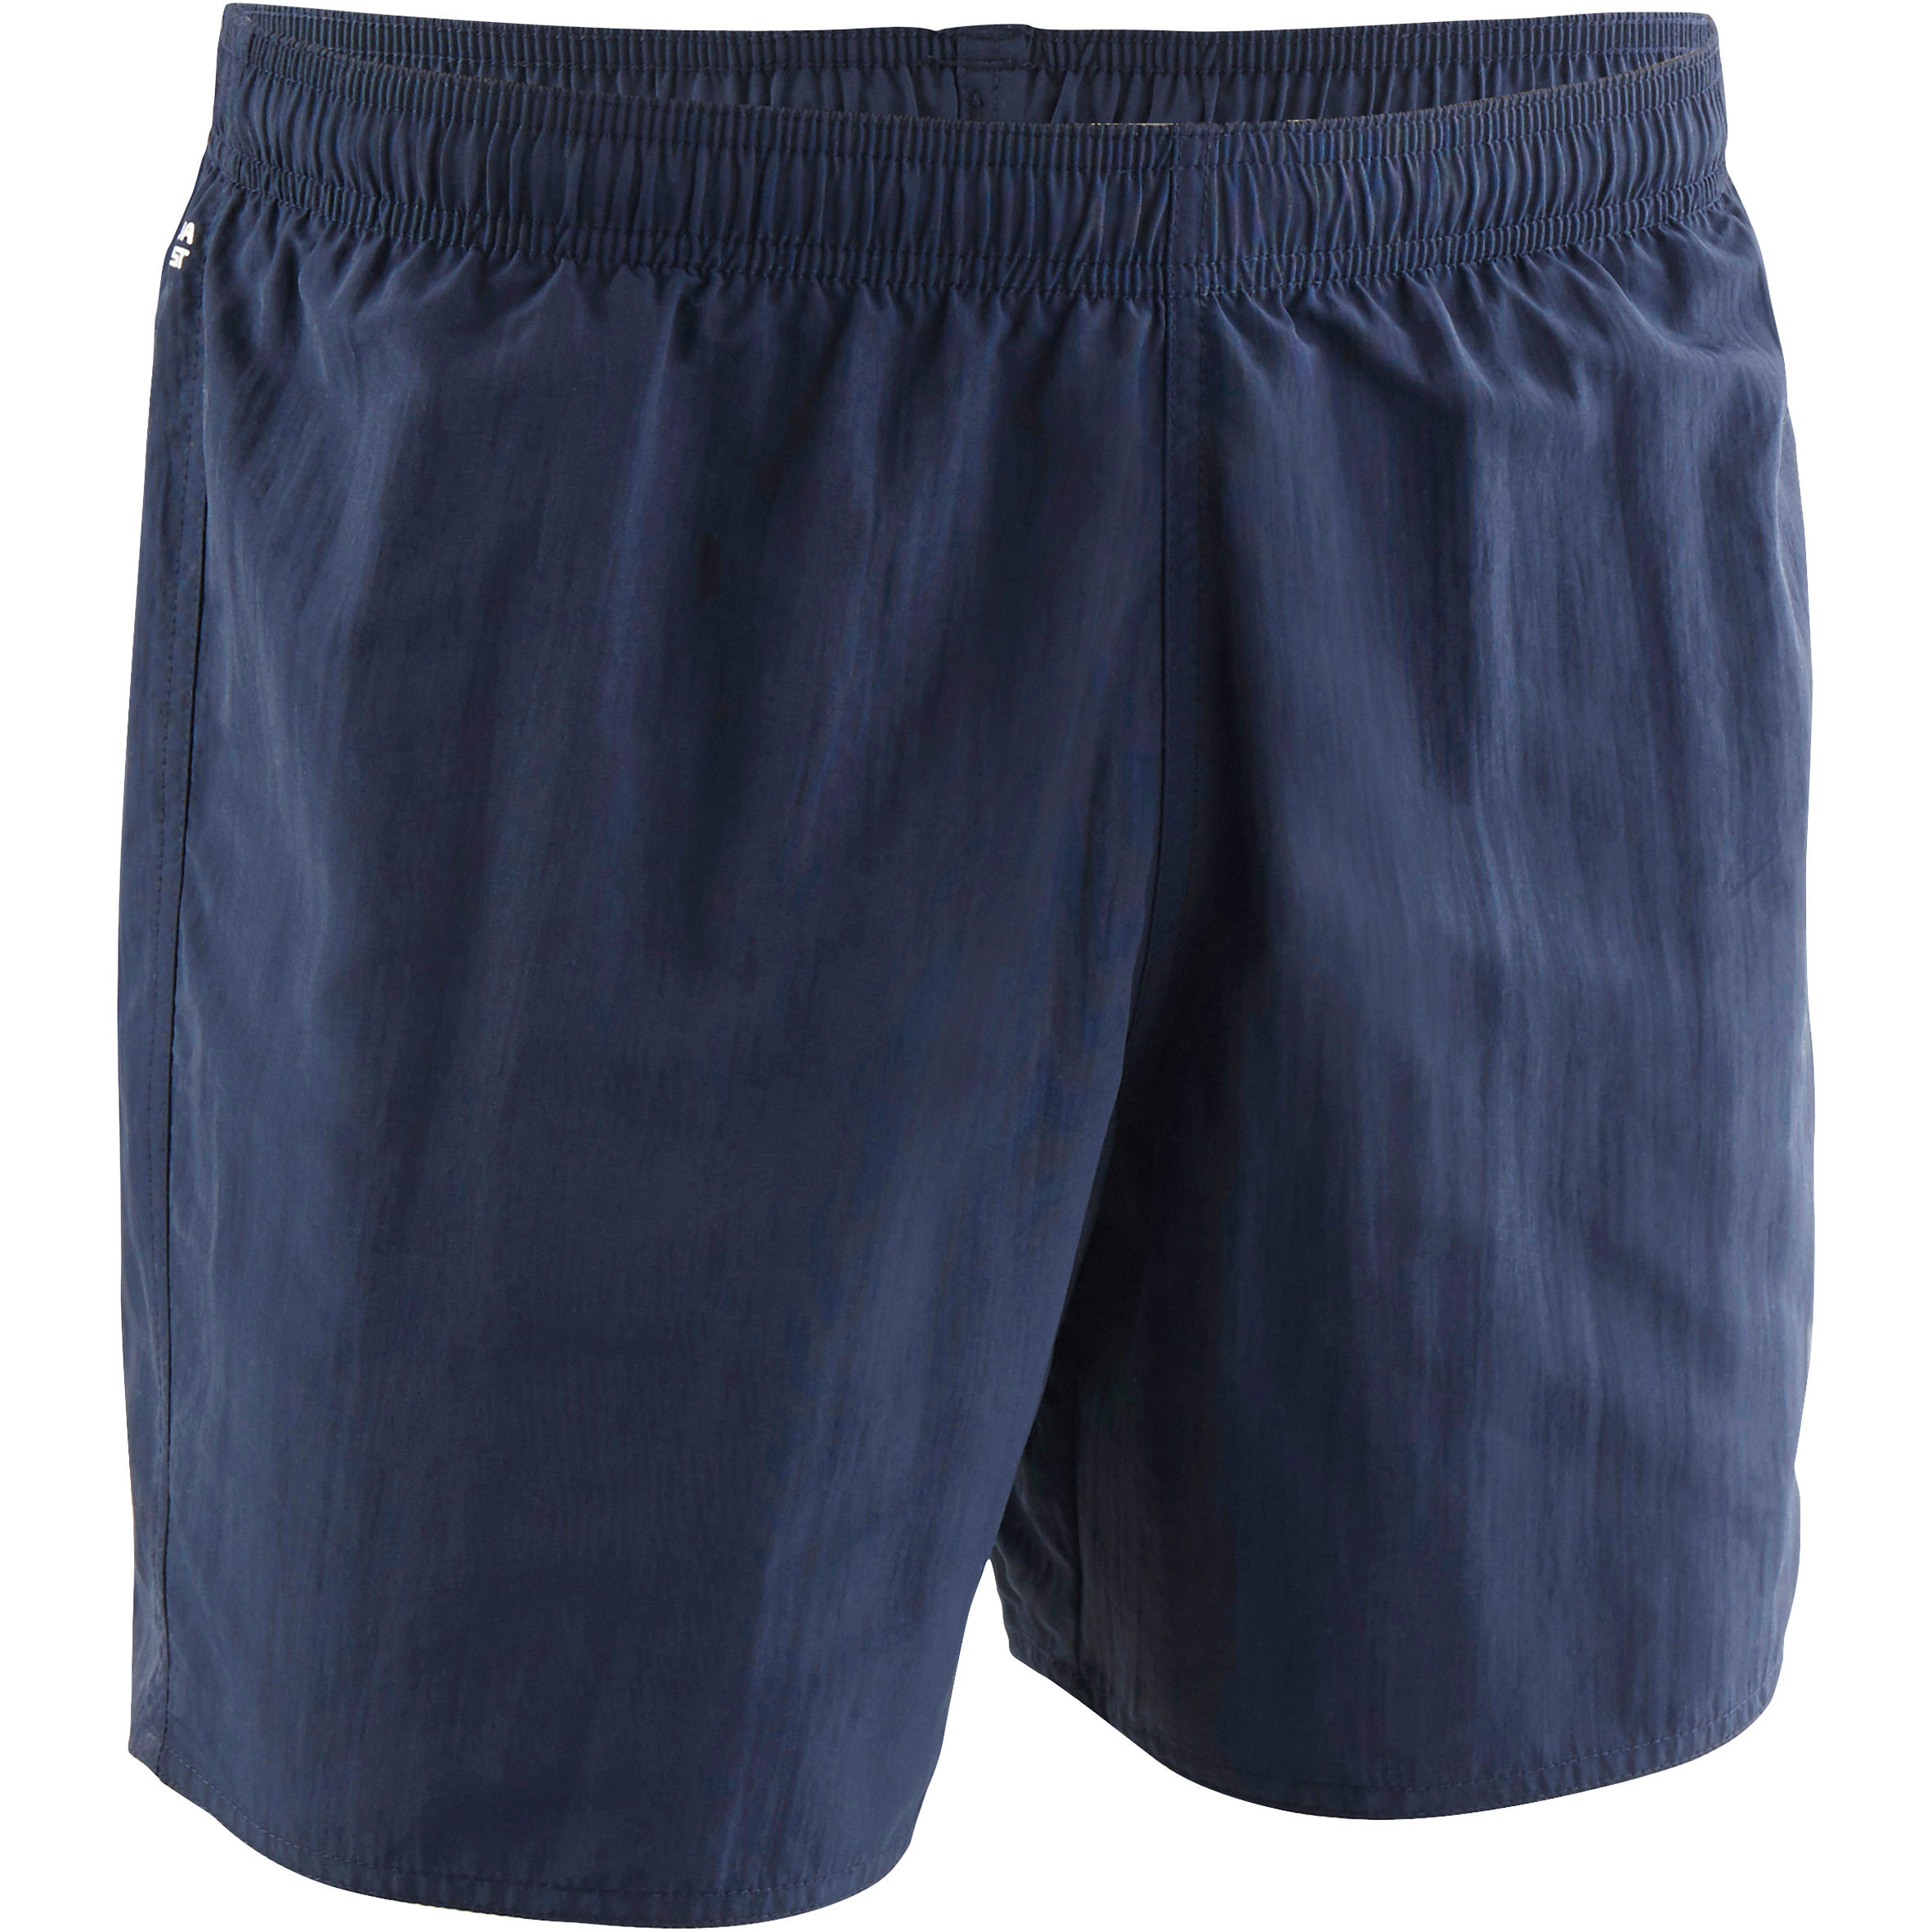 100 MEN'S SWIMSHORT FREE H NAVY ORANGE